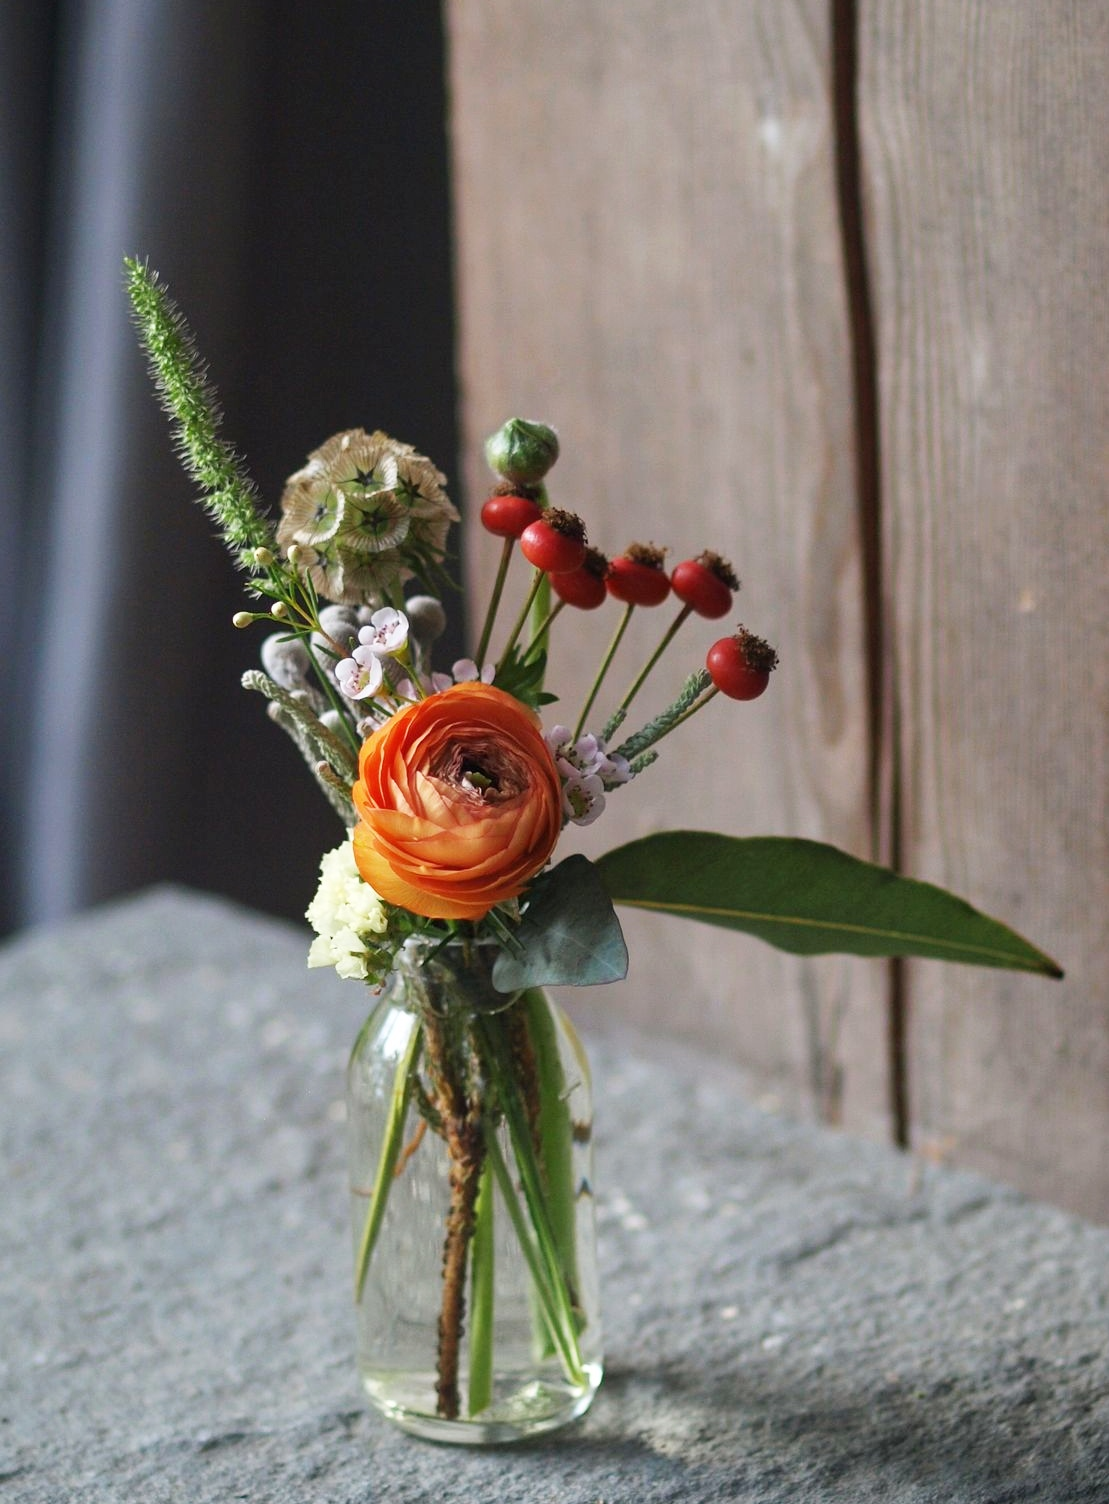 Oreonta house woodstock wedding bud vase with orange ranunculous, lambs ears, grey brunia, red berries and red rosehips and wildflowers rosehip social rosehip floral pink wax flowers.jpg